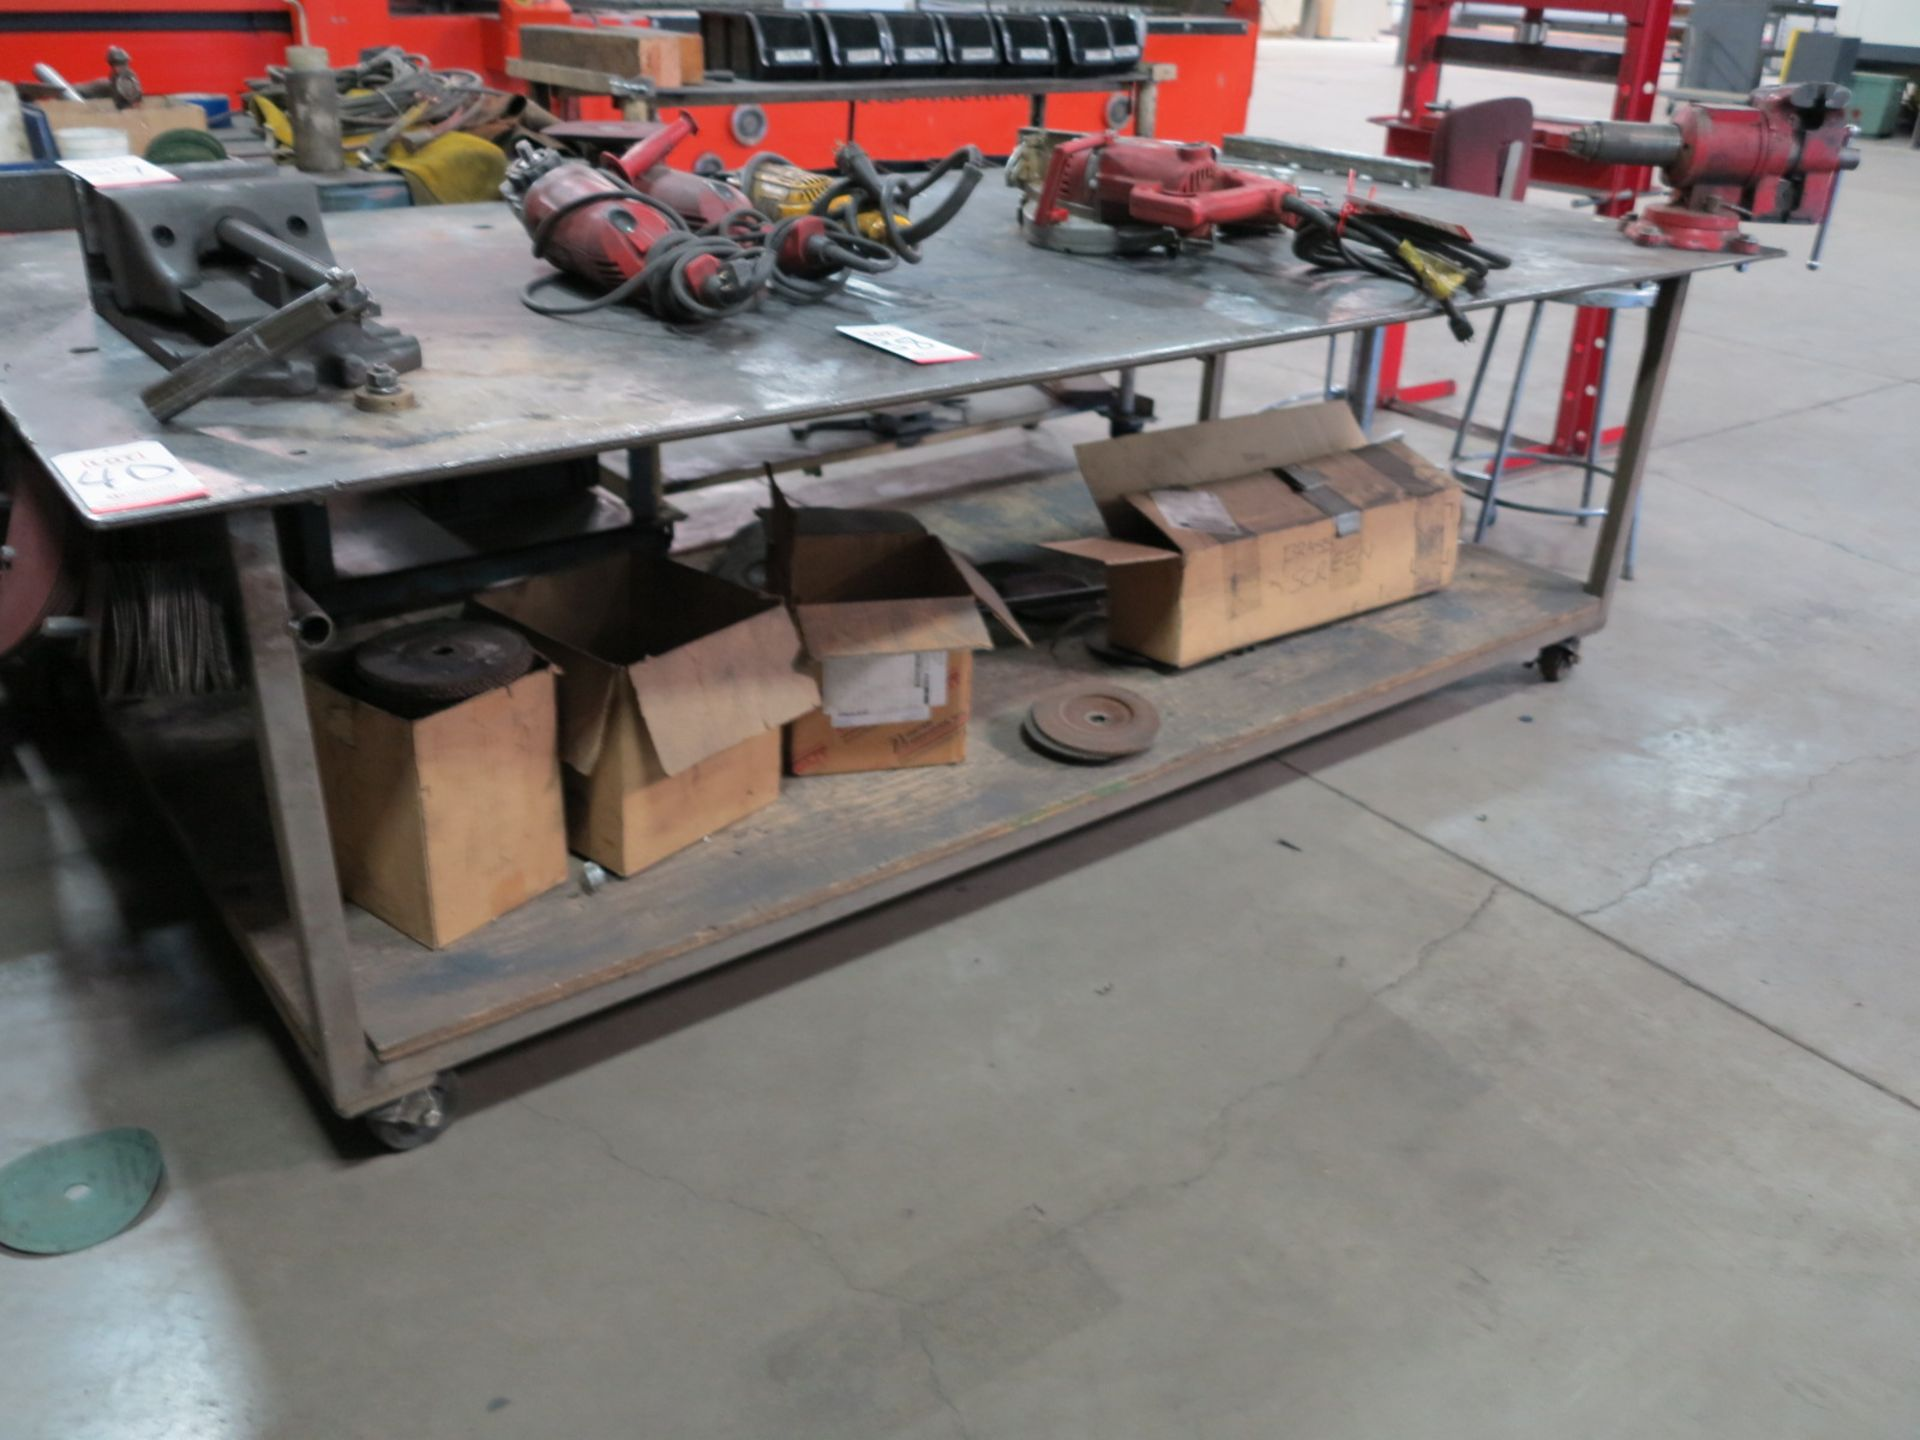 """Lot 40 - 8' X 4' STEEL TABLE ON CASTERS, W/ 5"""" VISE AND MISC ANGLE GRINDER WHEELS"""